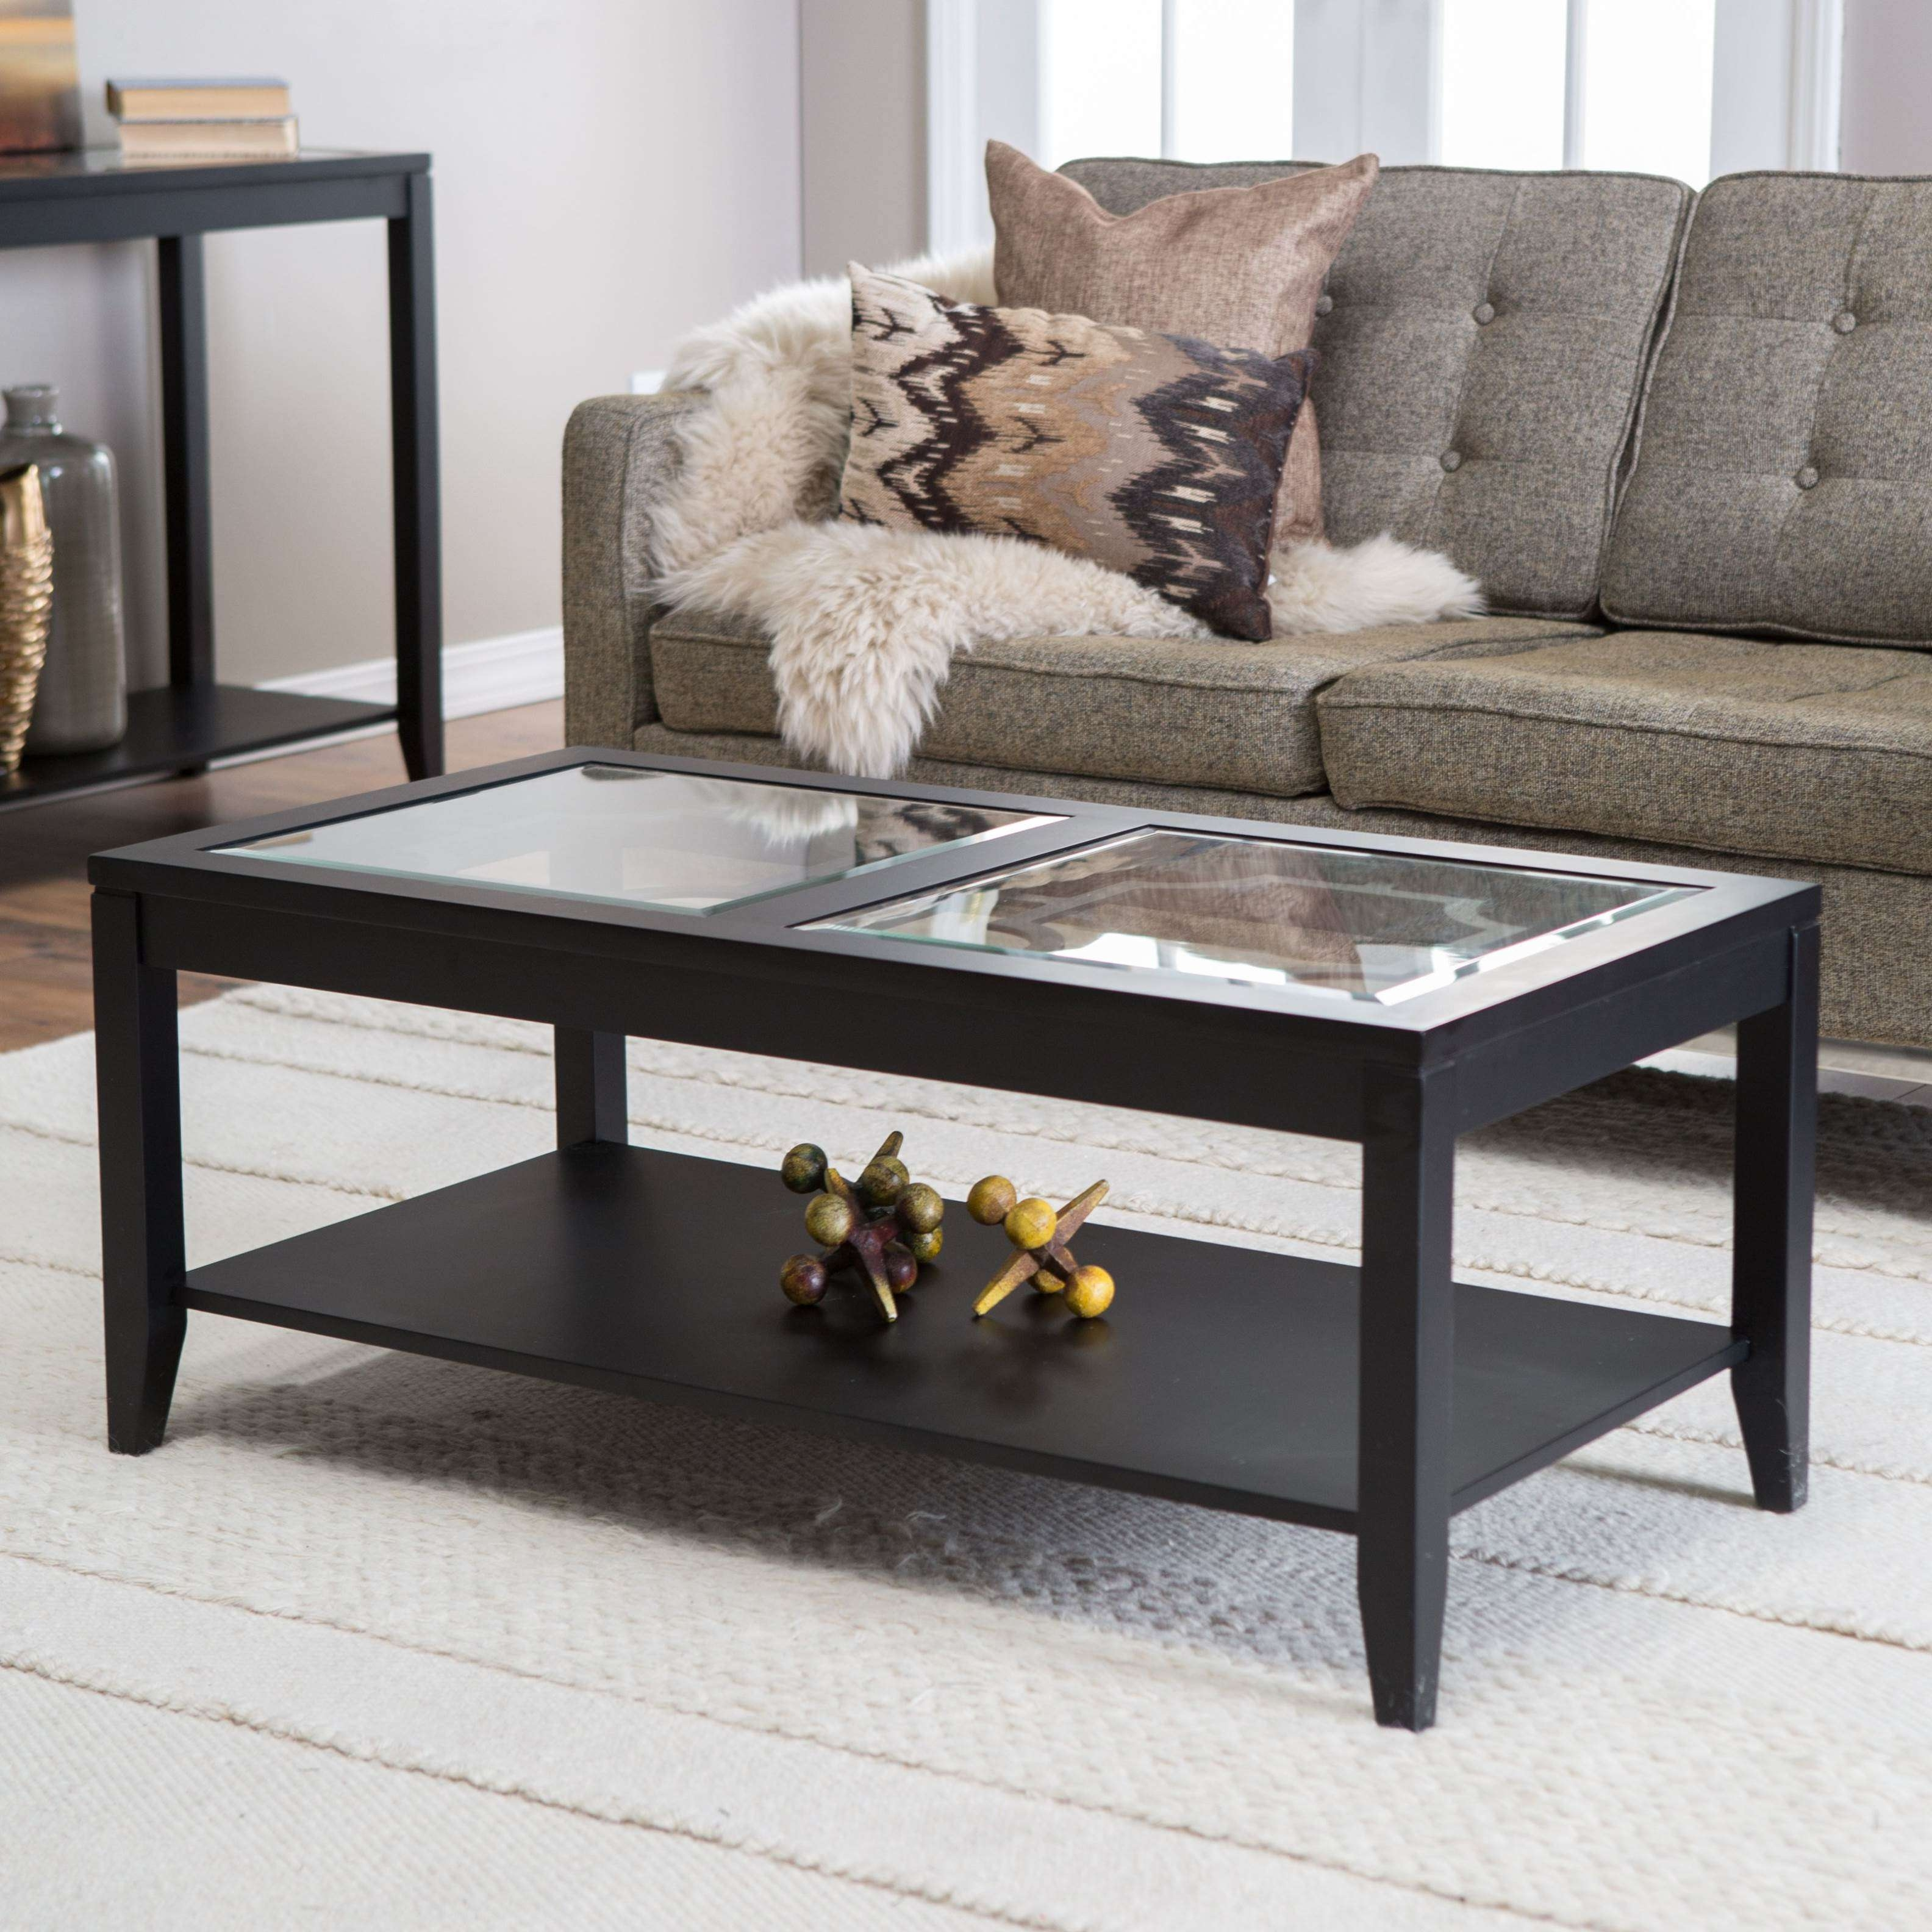 Most Recent Rectangle Glass Coffee Table For Glass Coffee Tables For More Joyful Excitements (View 13 of 20)